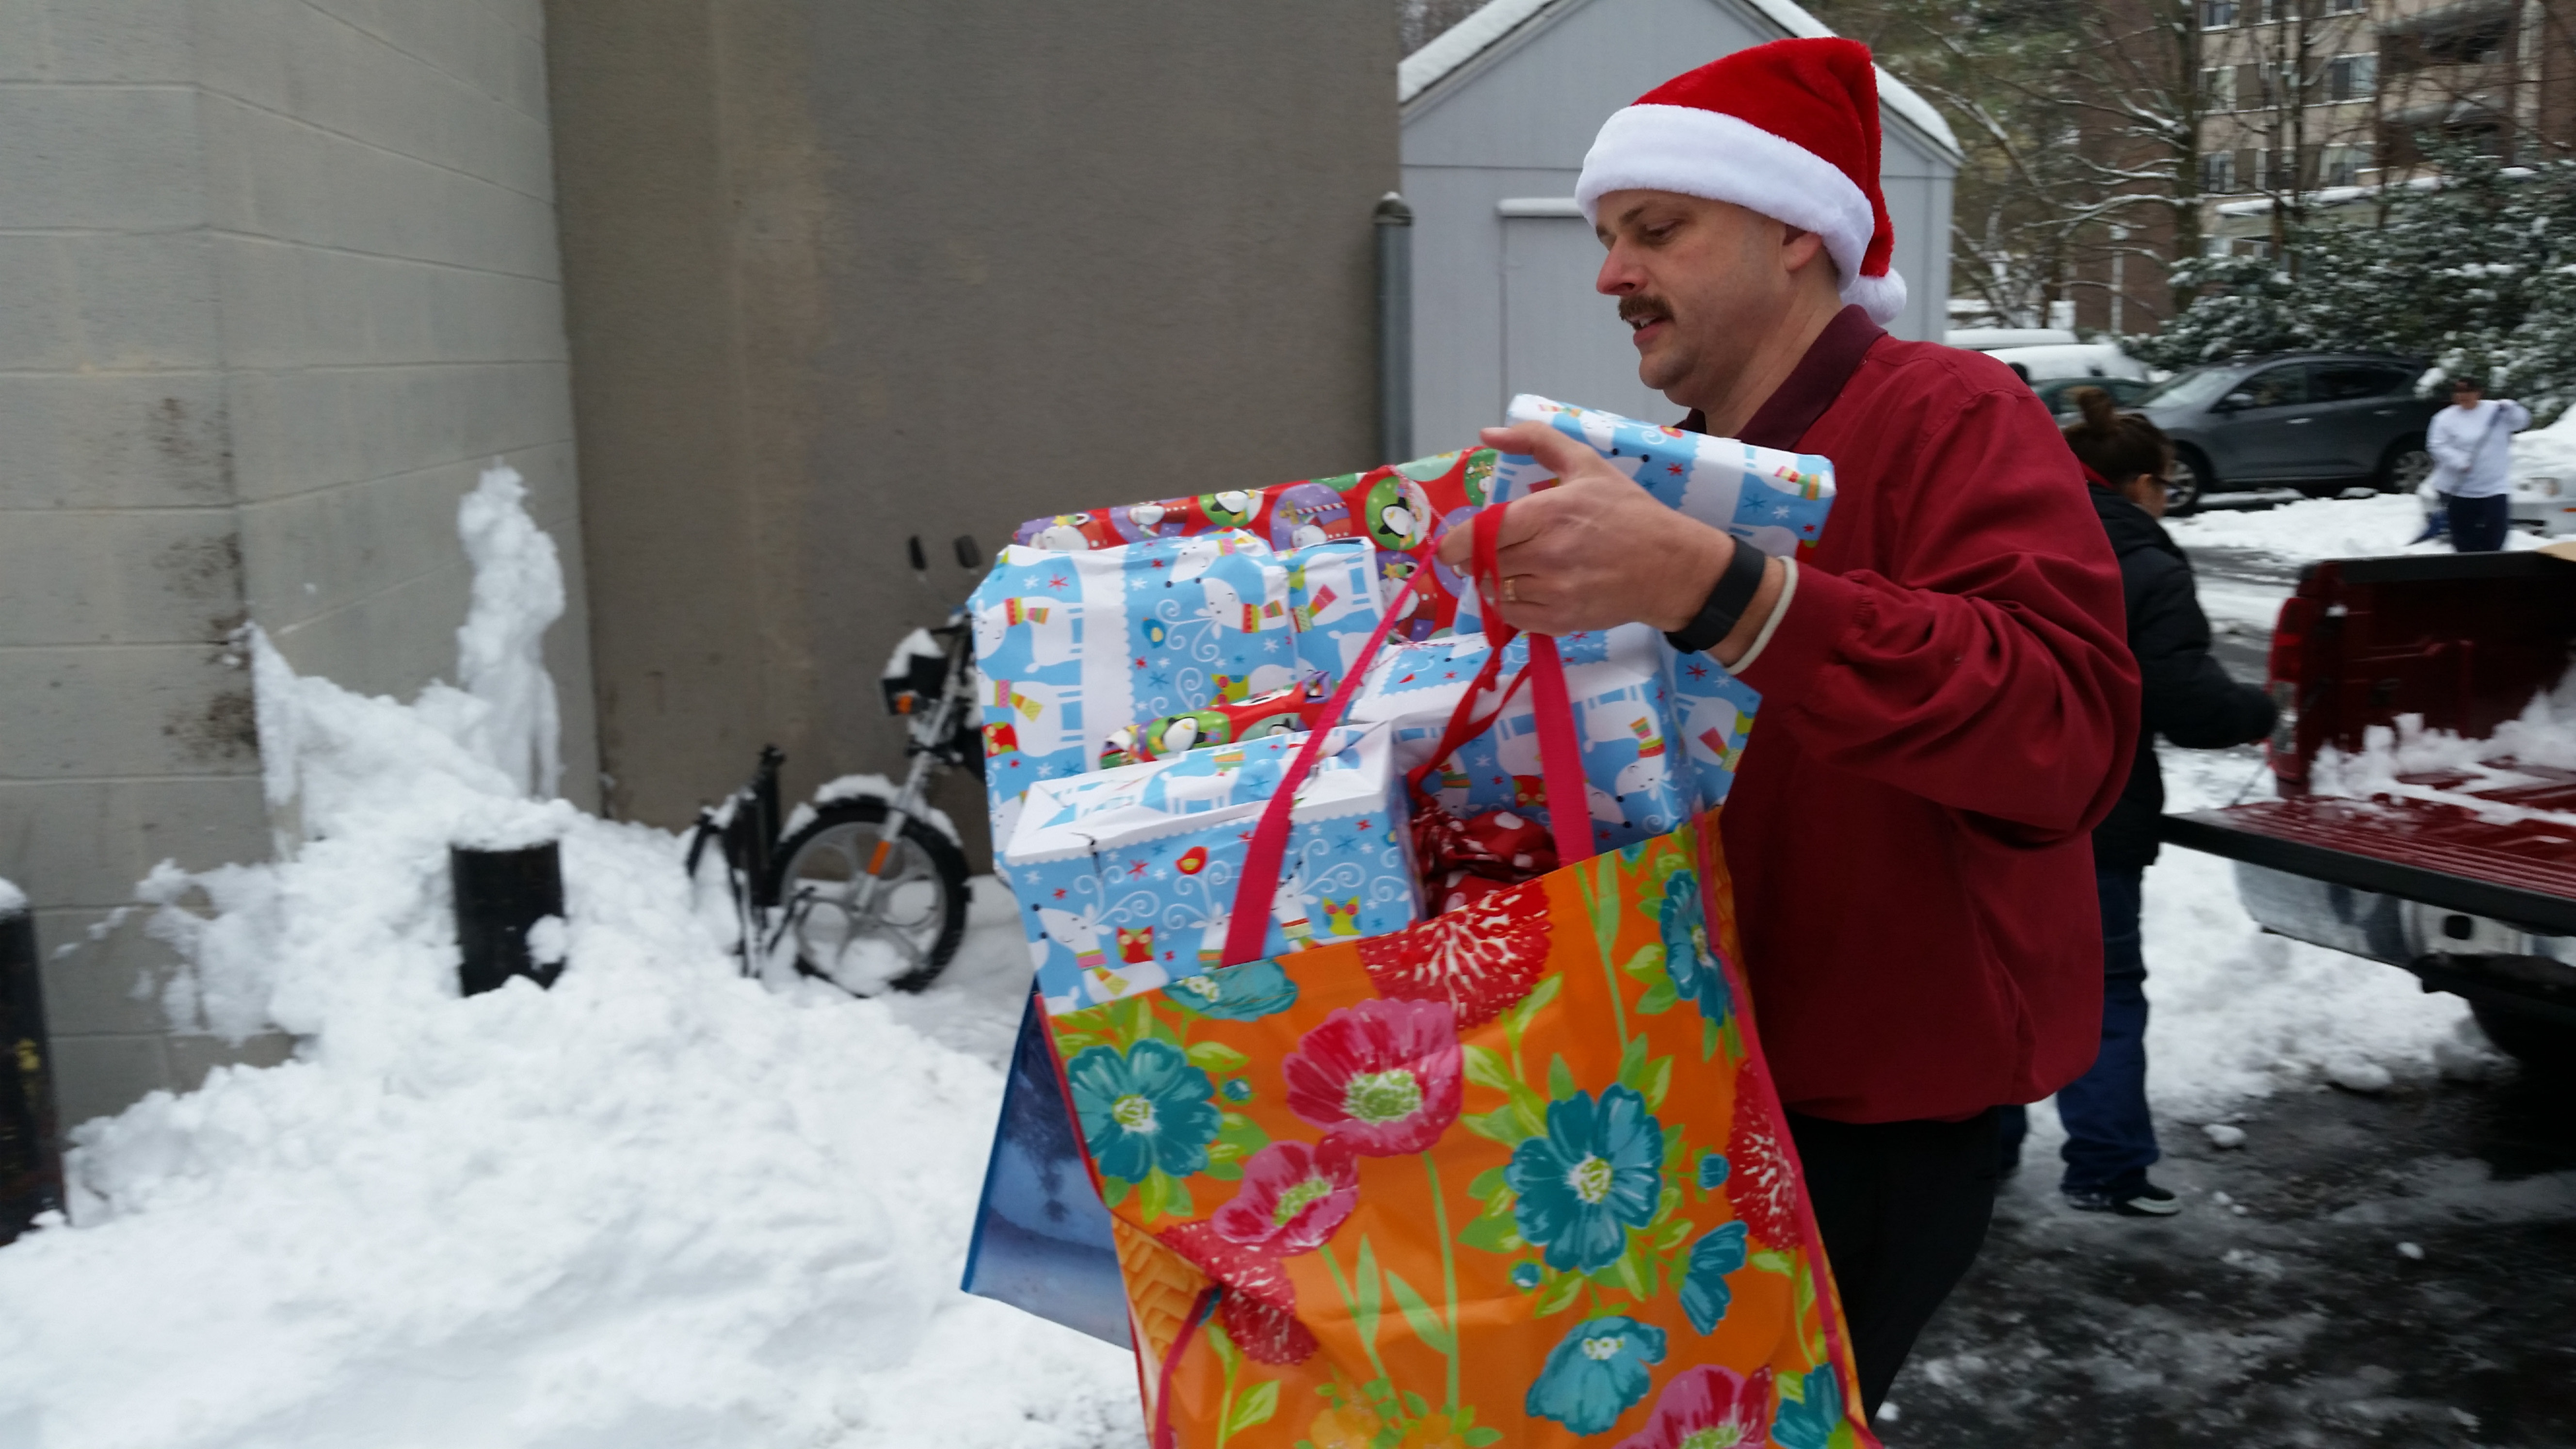 George Hall brings gifts into the shelter on St. Casimir Drive on Saturday. | Lauren SIevert, Record-Journal